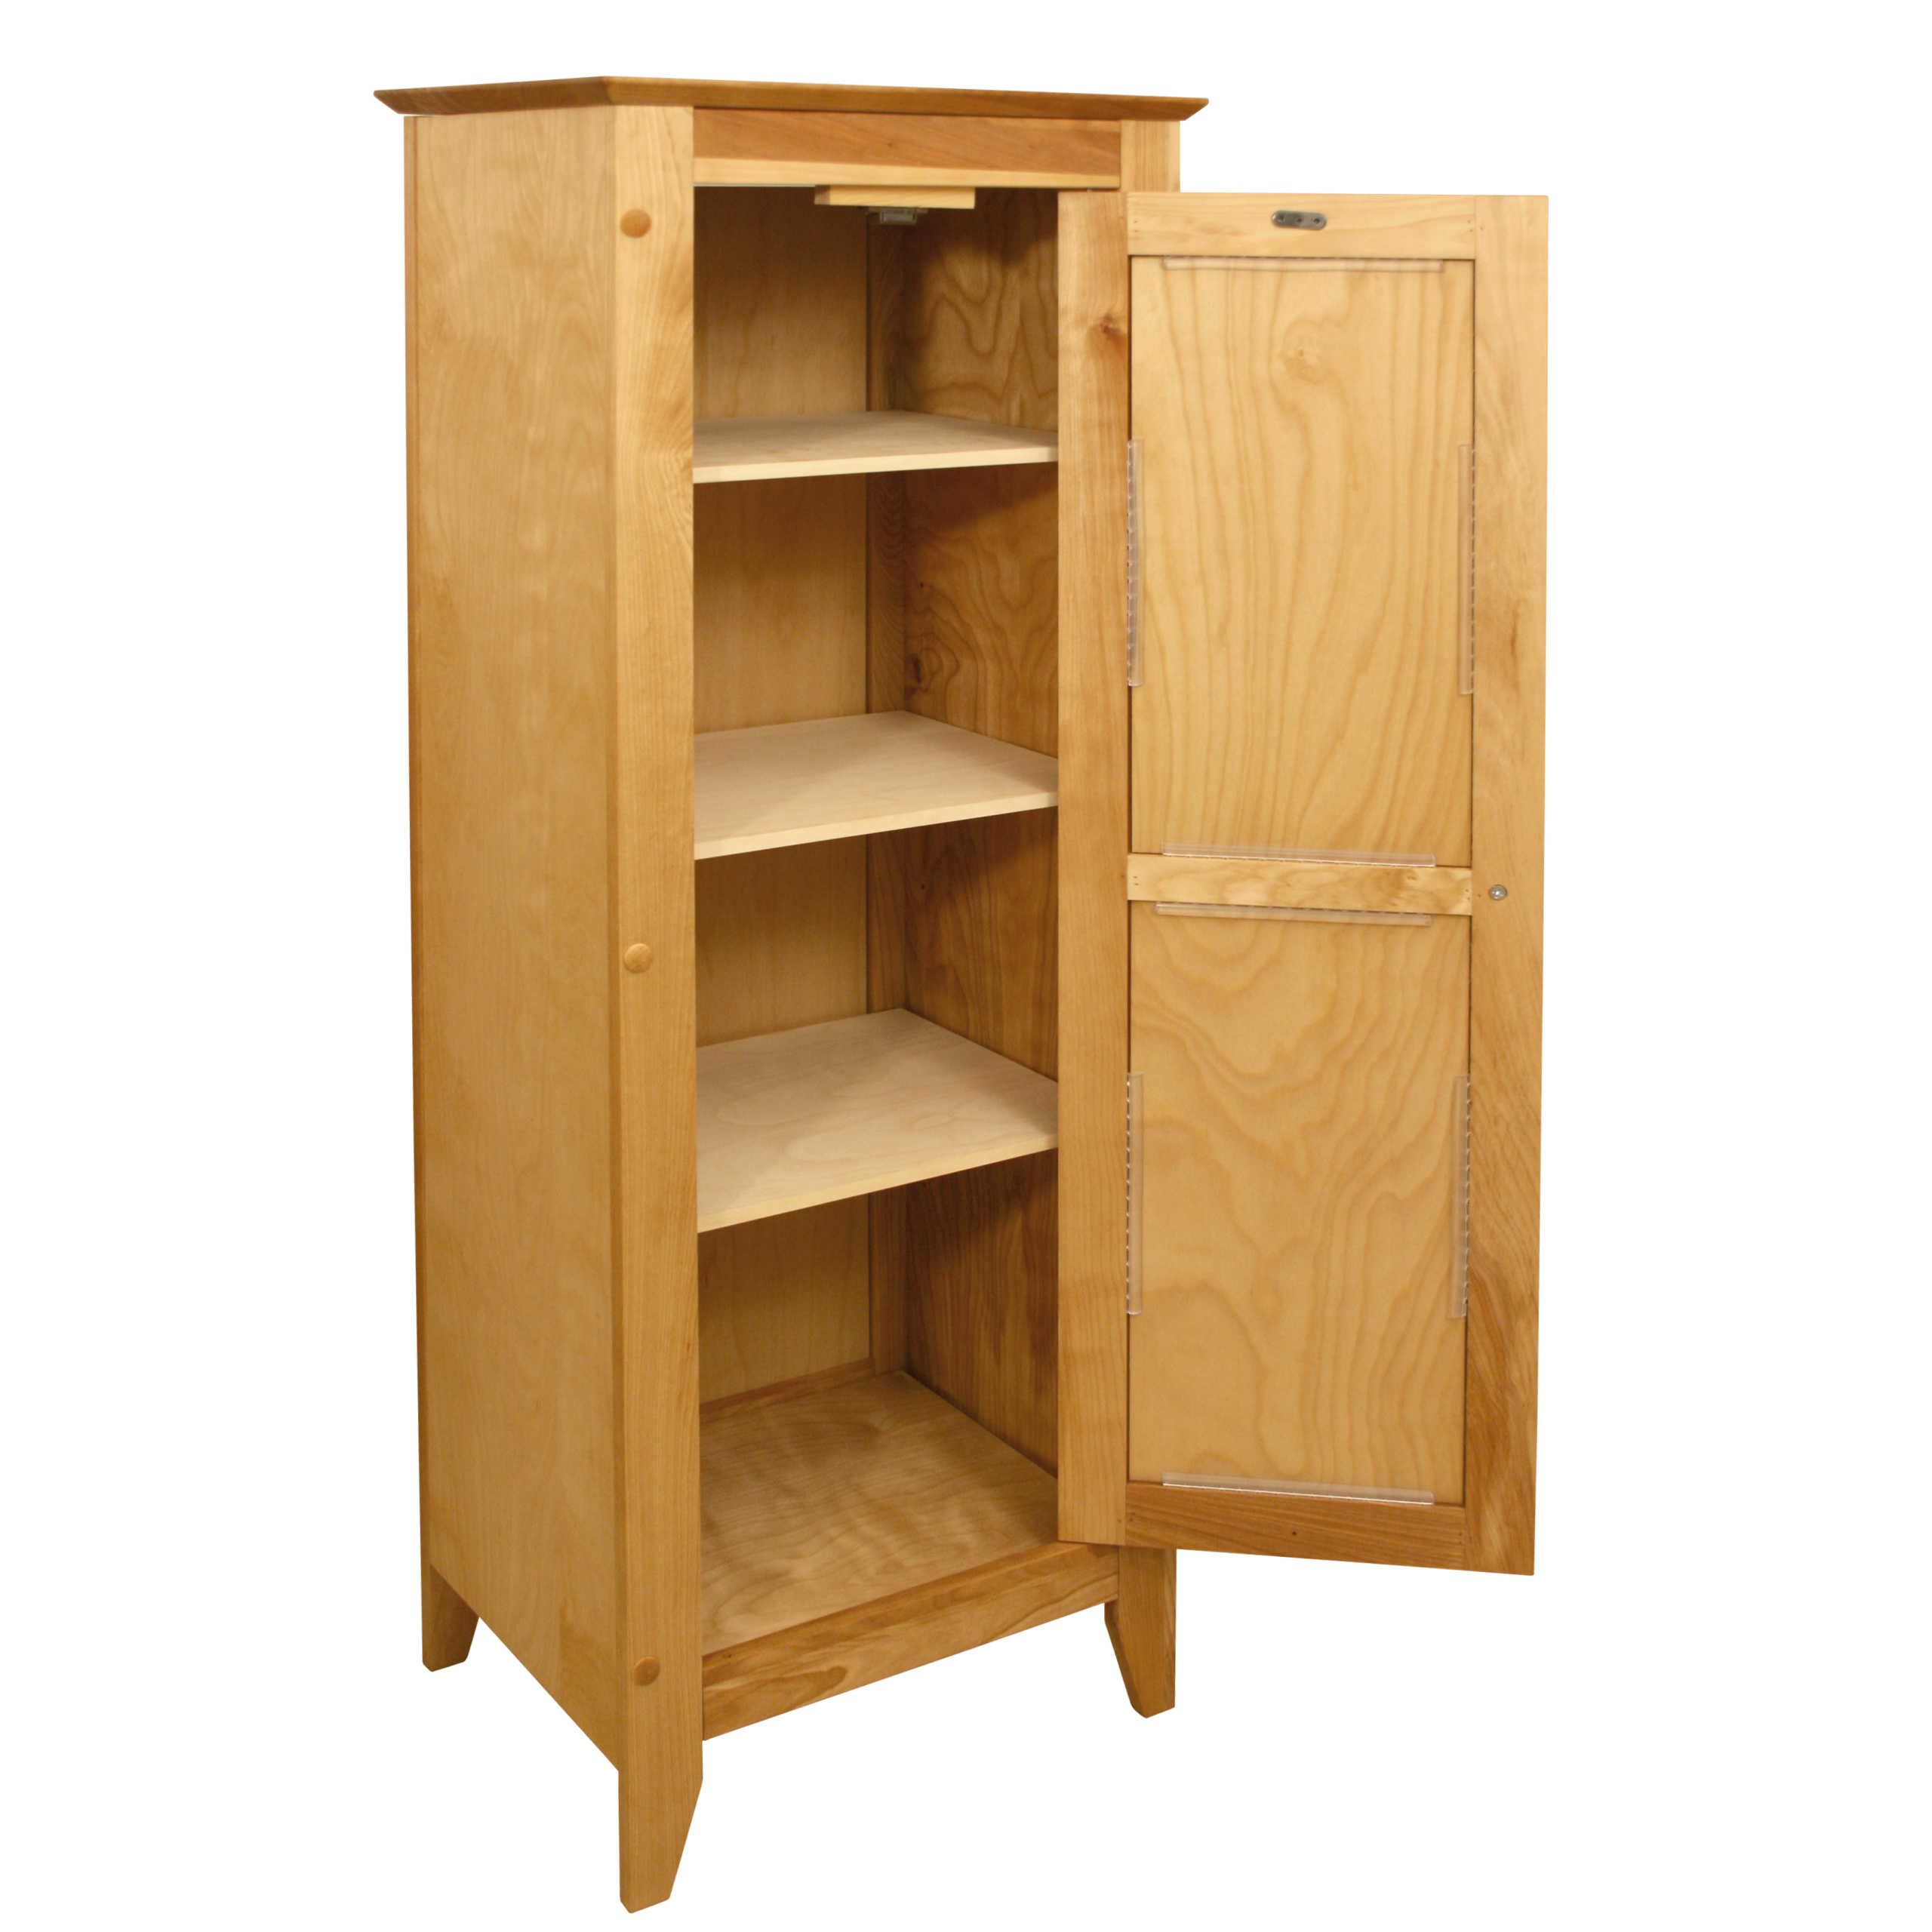 Catskill craftsmen single door storage cabinet model 7217 for Single kitchen cabinet